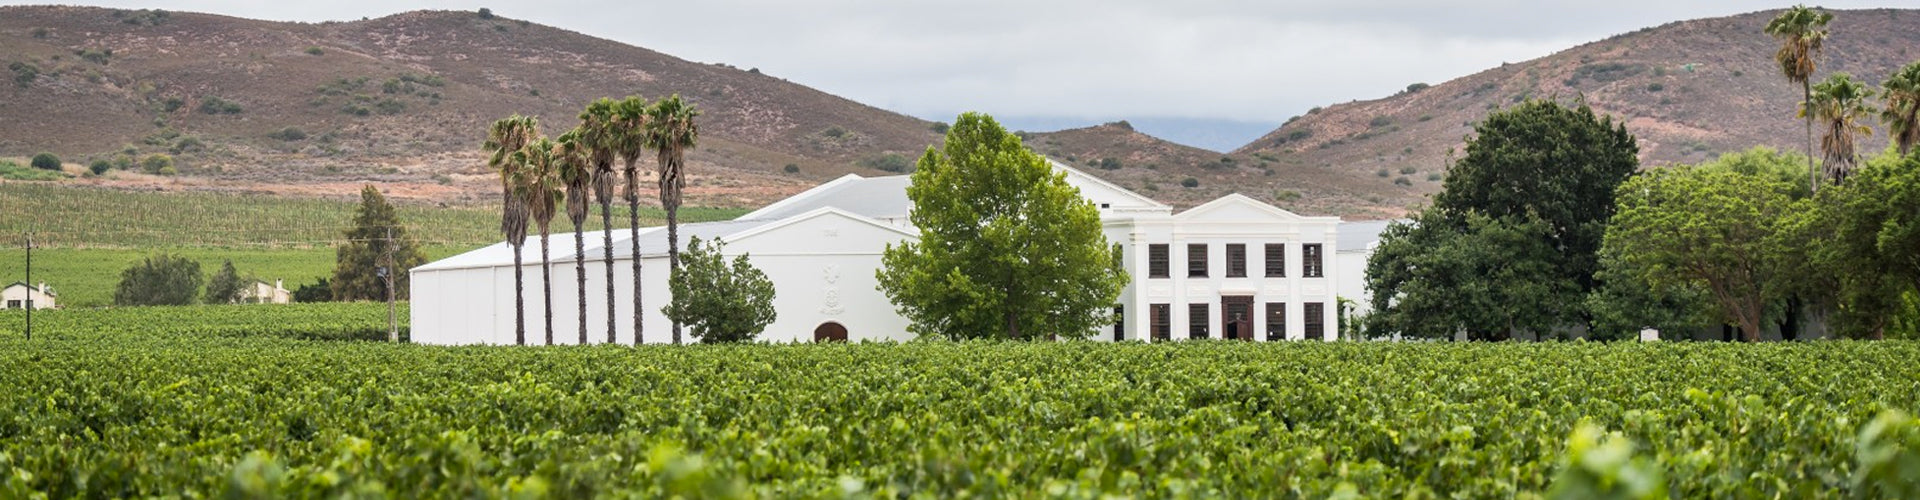 De Wetshof Estate House and Vineyards in Robertson, South Africa